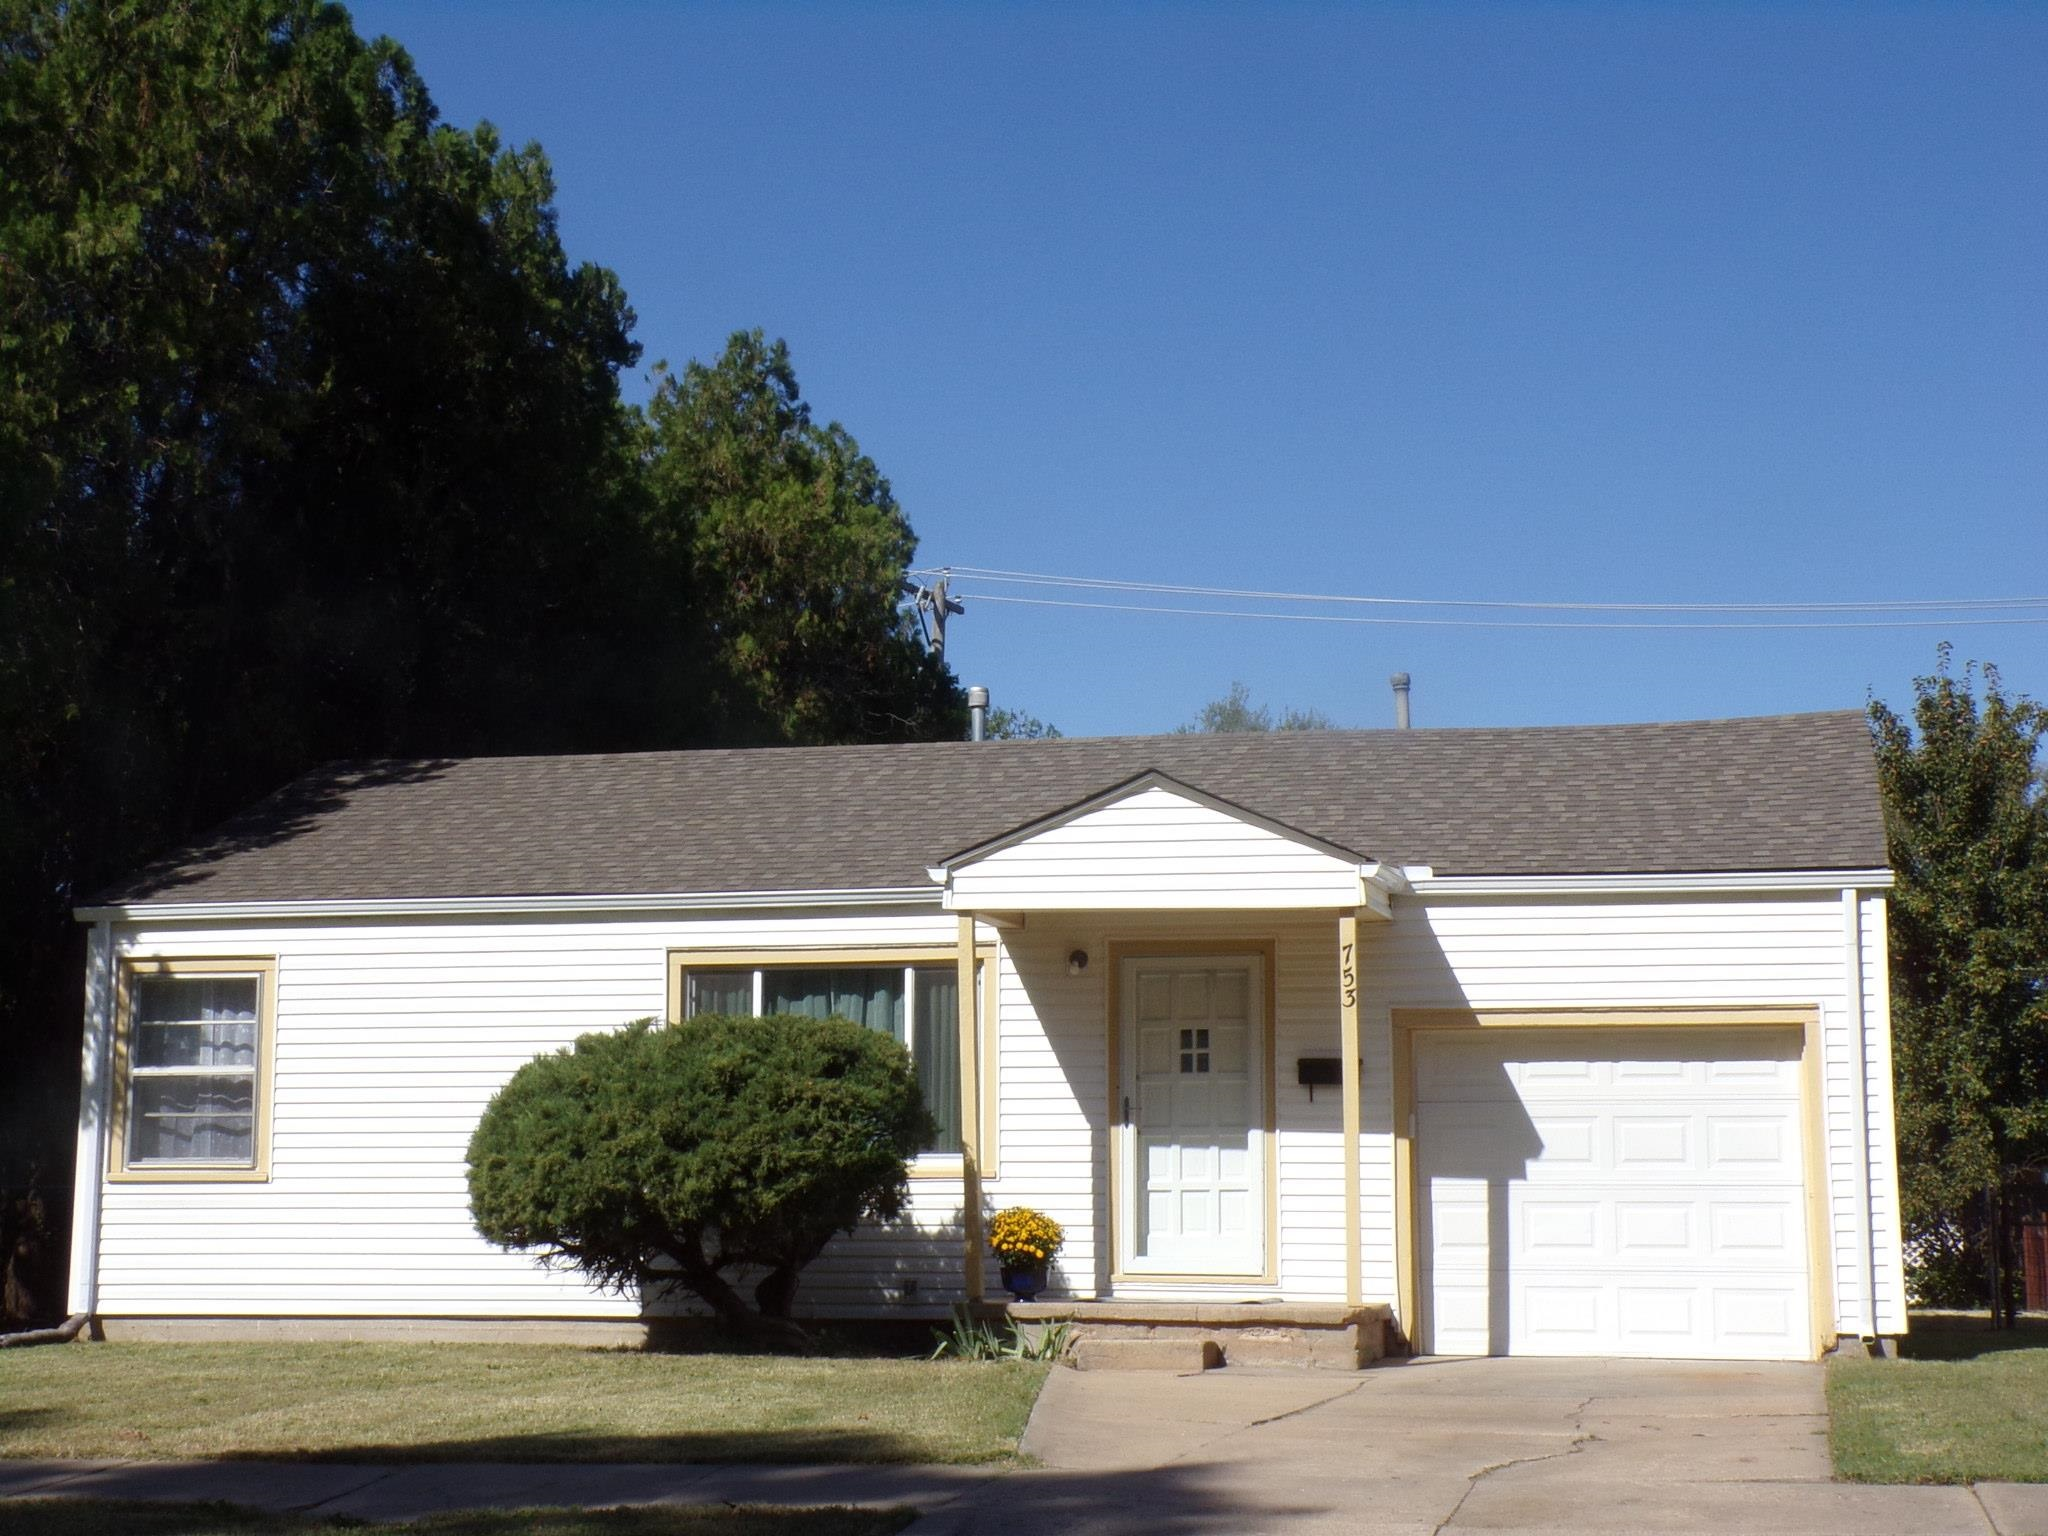 Don't miss this move-in ready, freshly remodeled ranch! This affordable 2 bedroom home features seve